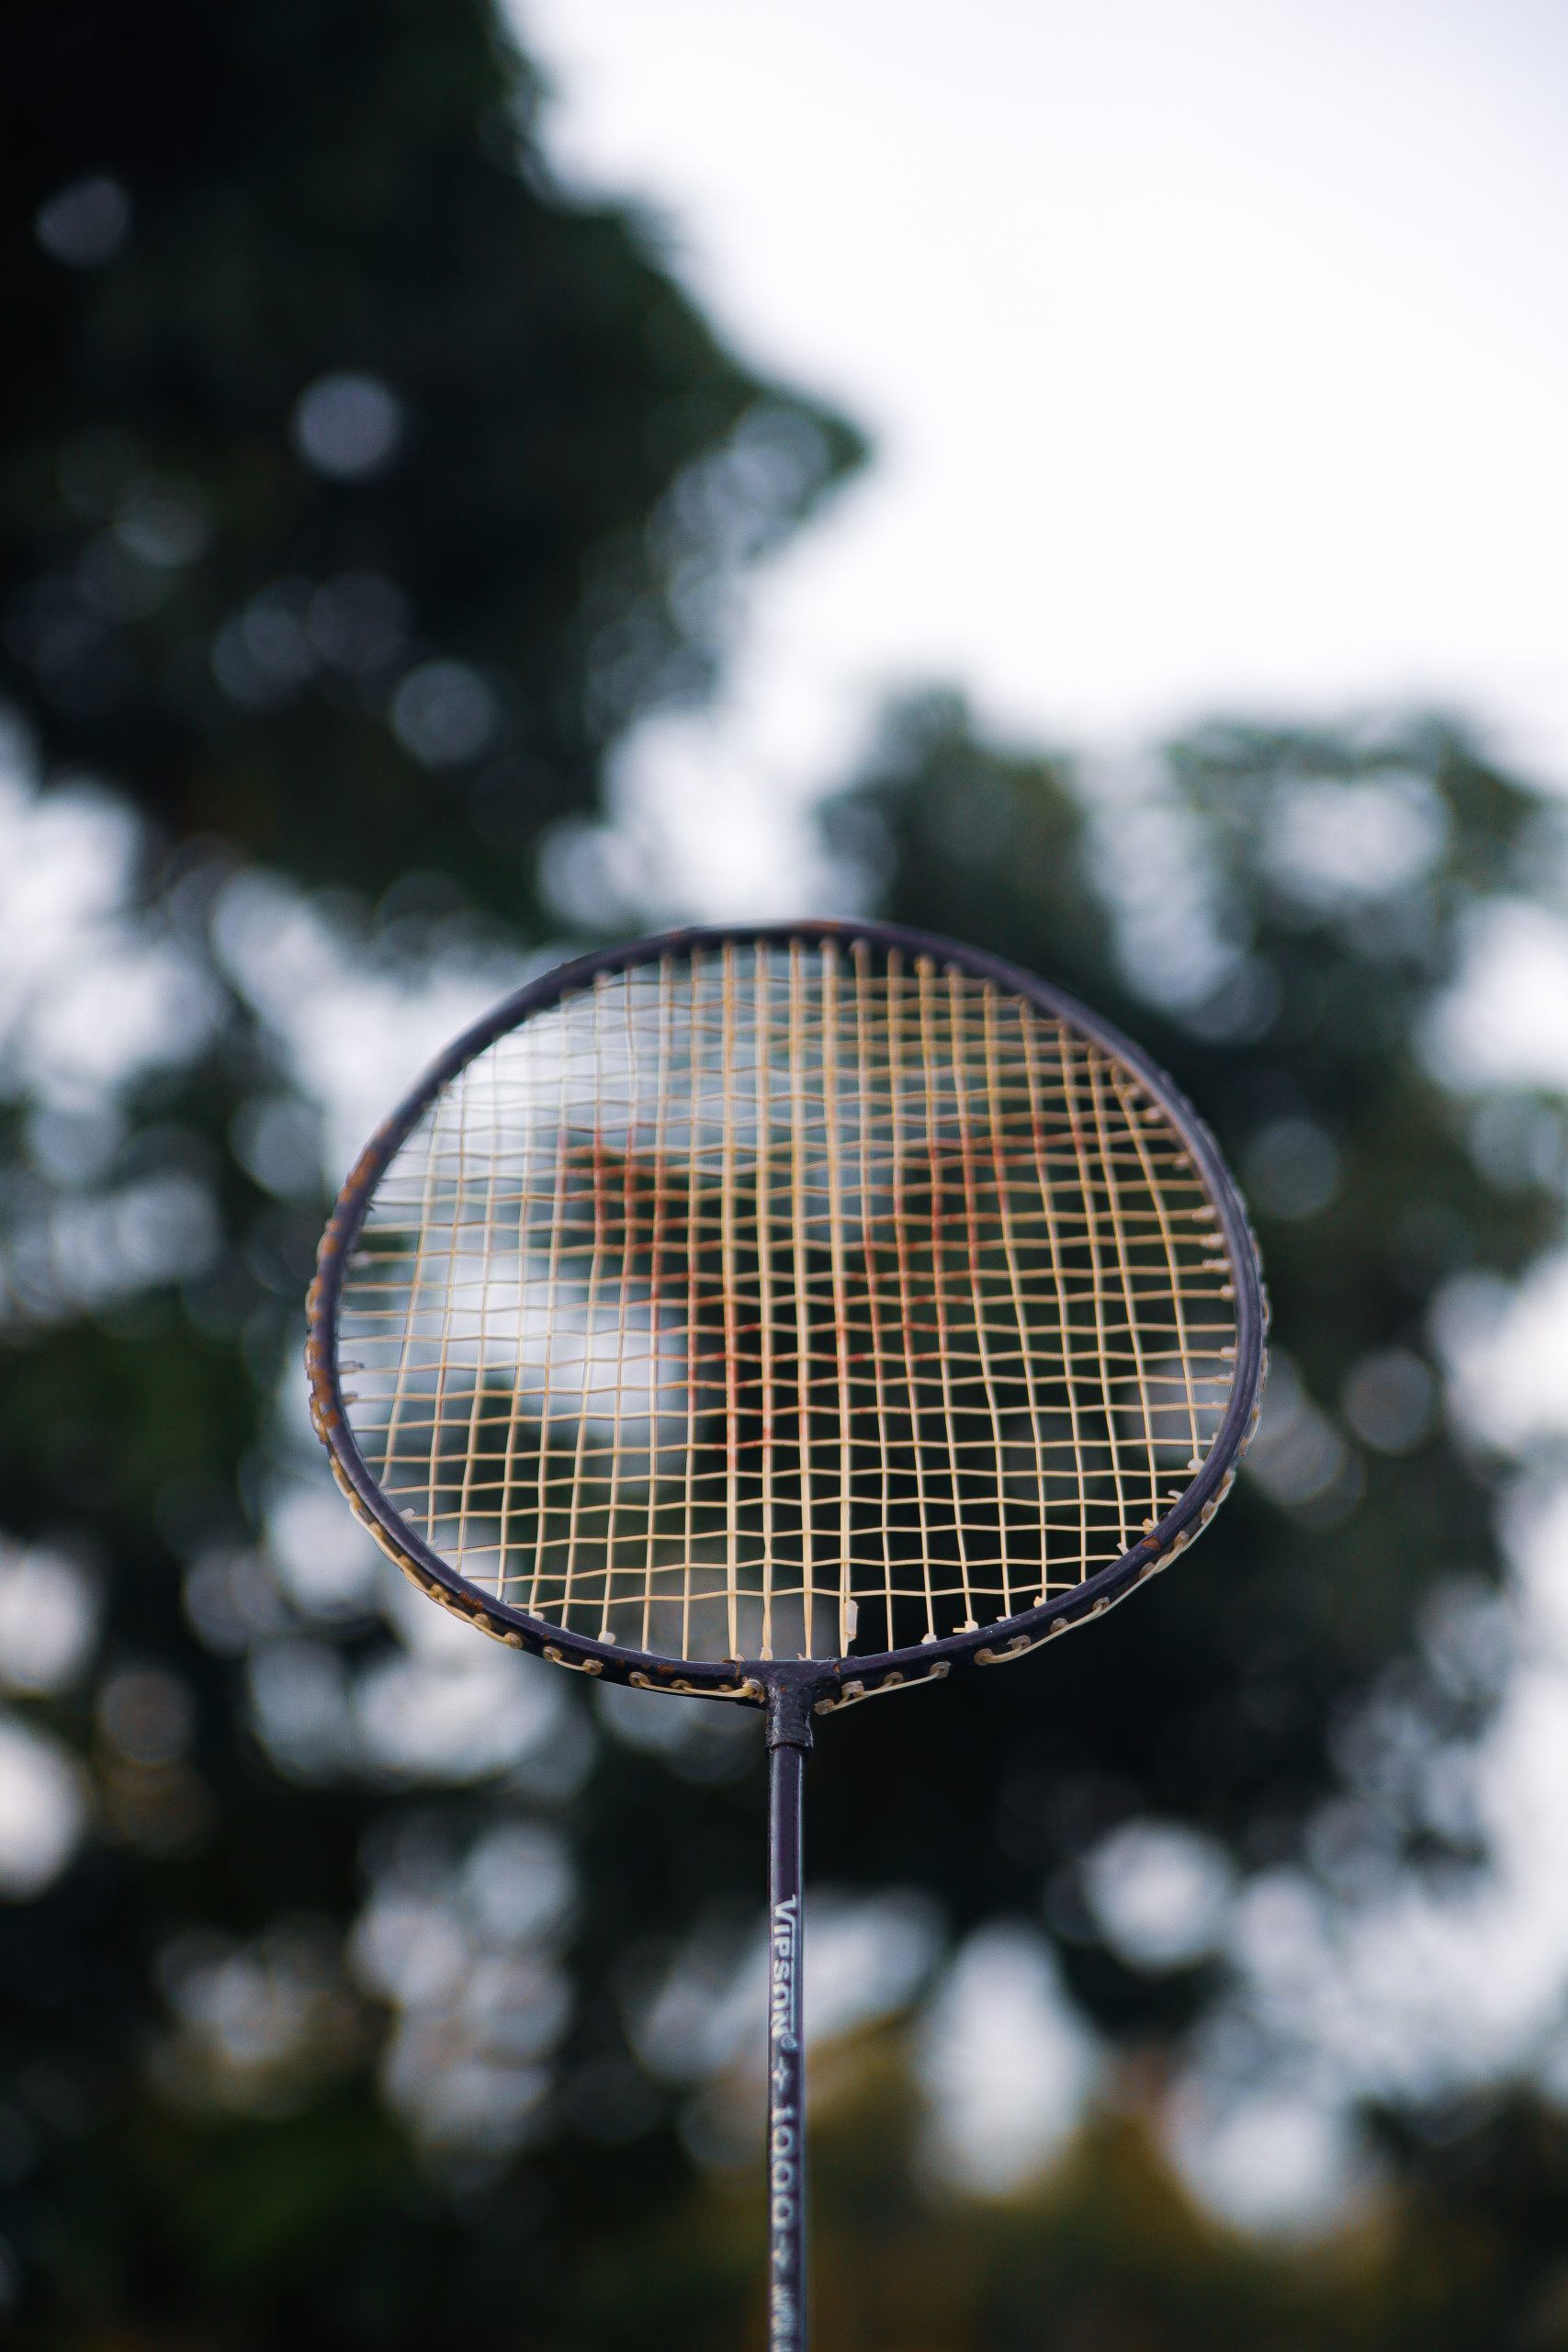 Badminton racket on focus